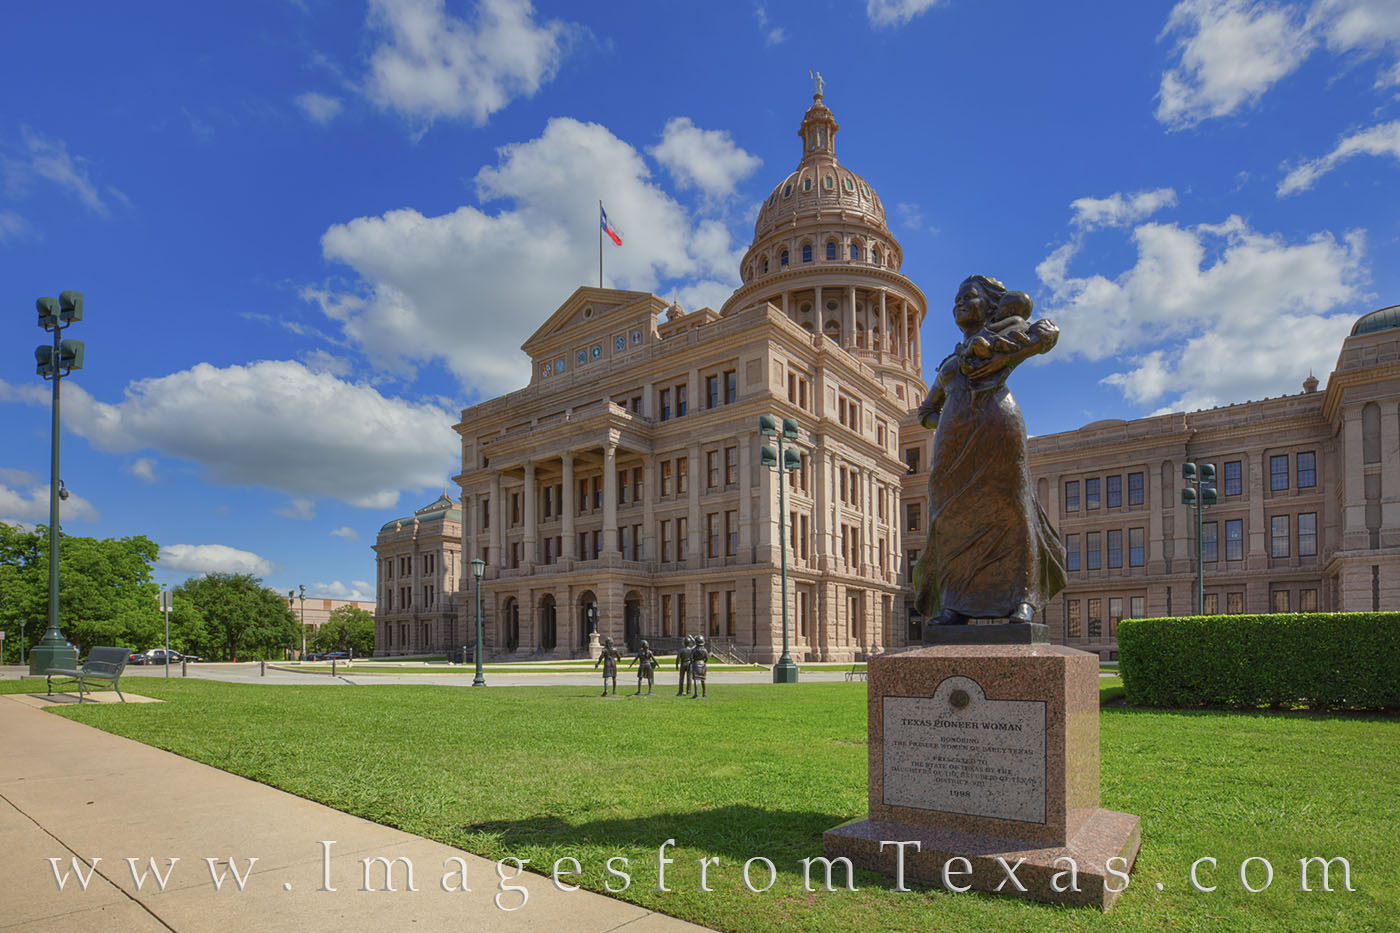 The Pioneer Woman Monument at the Texas State Capitol was erected in 1998 by the Daughters of the Republic of Texas, District...